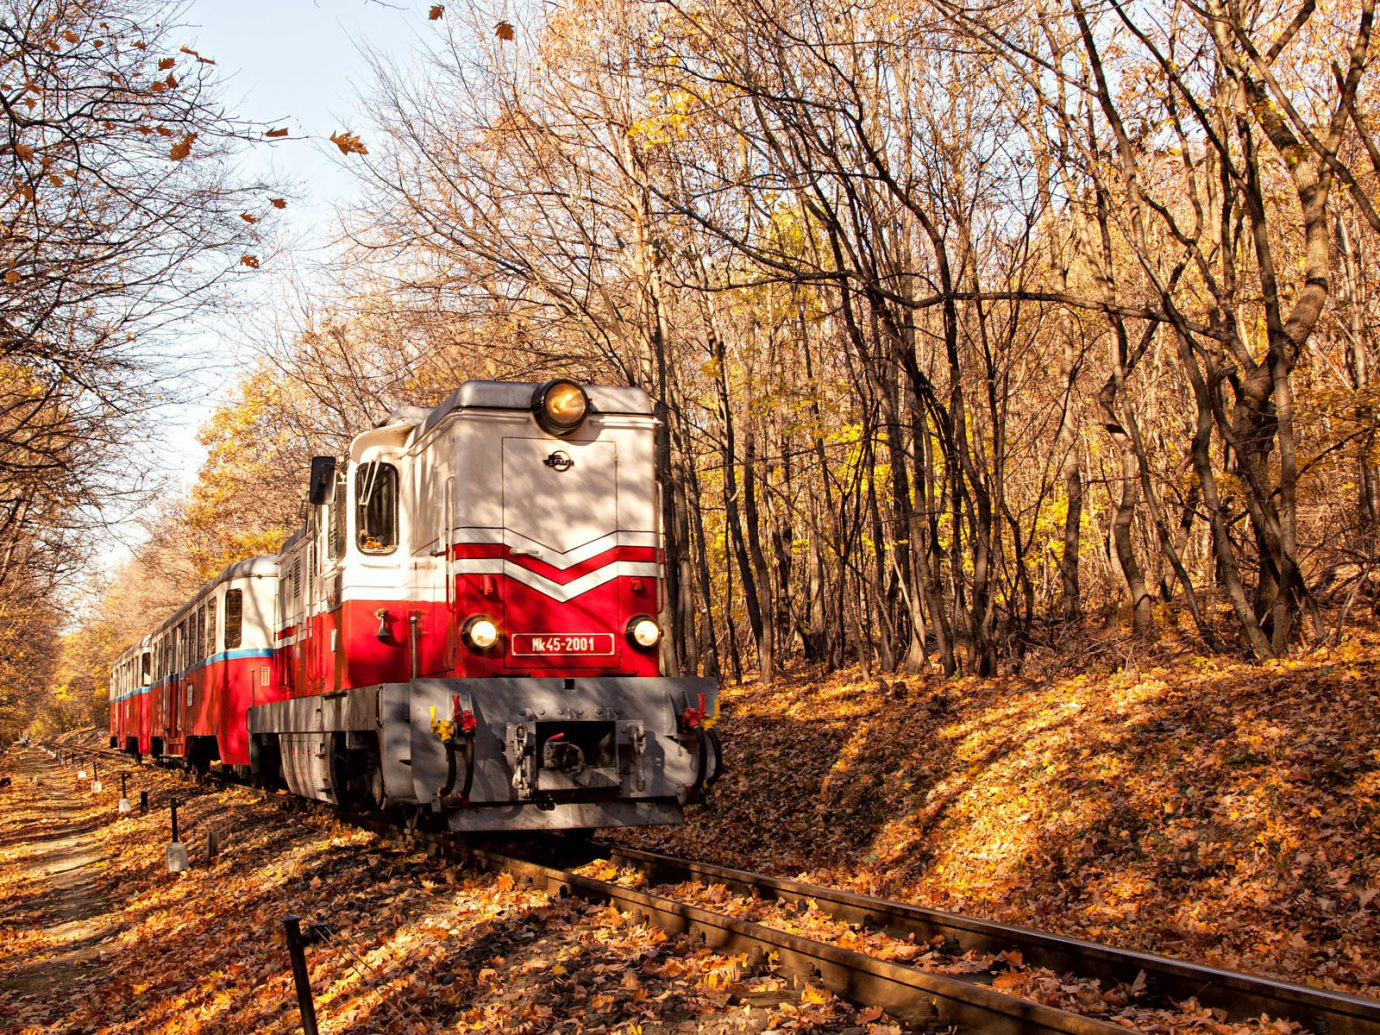 autumn Fall fall colors Fall leaves foliage rail railroad train transportation Trip Ideas tree track outdoor transport vehicle season rolling stock rail transport Winter Forest traveling wooded